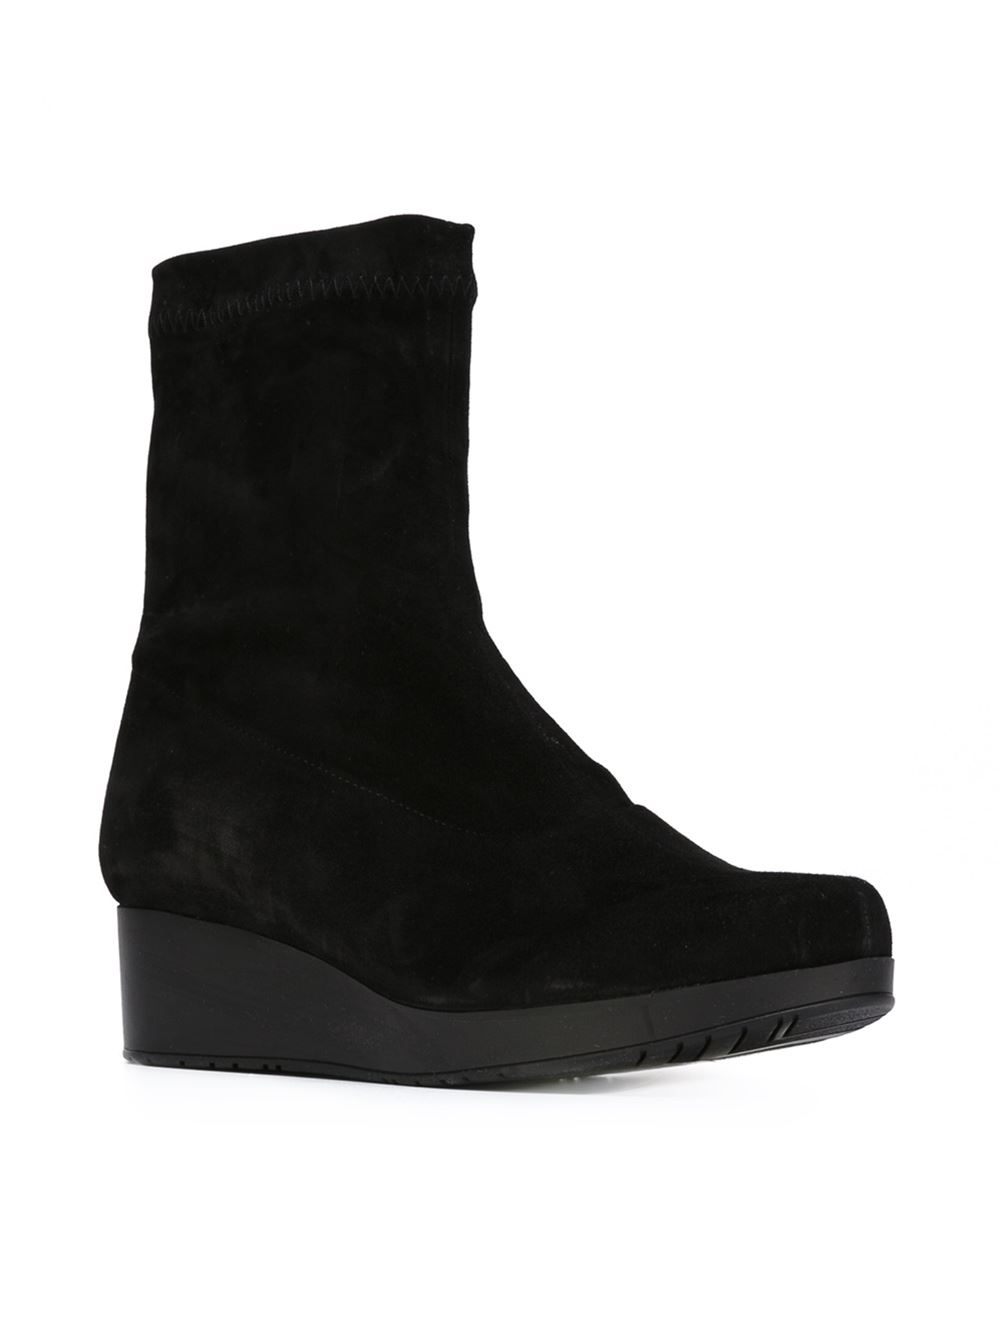 robert clergerie nerdal wedge boots in black lyst